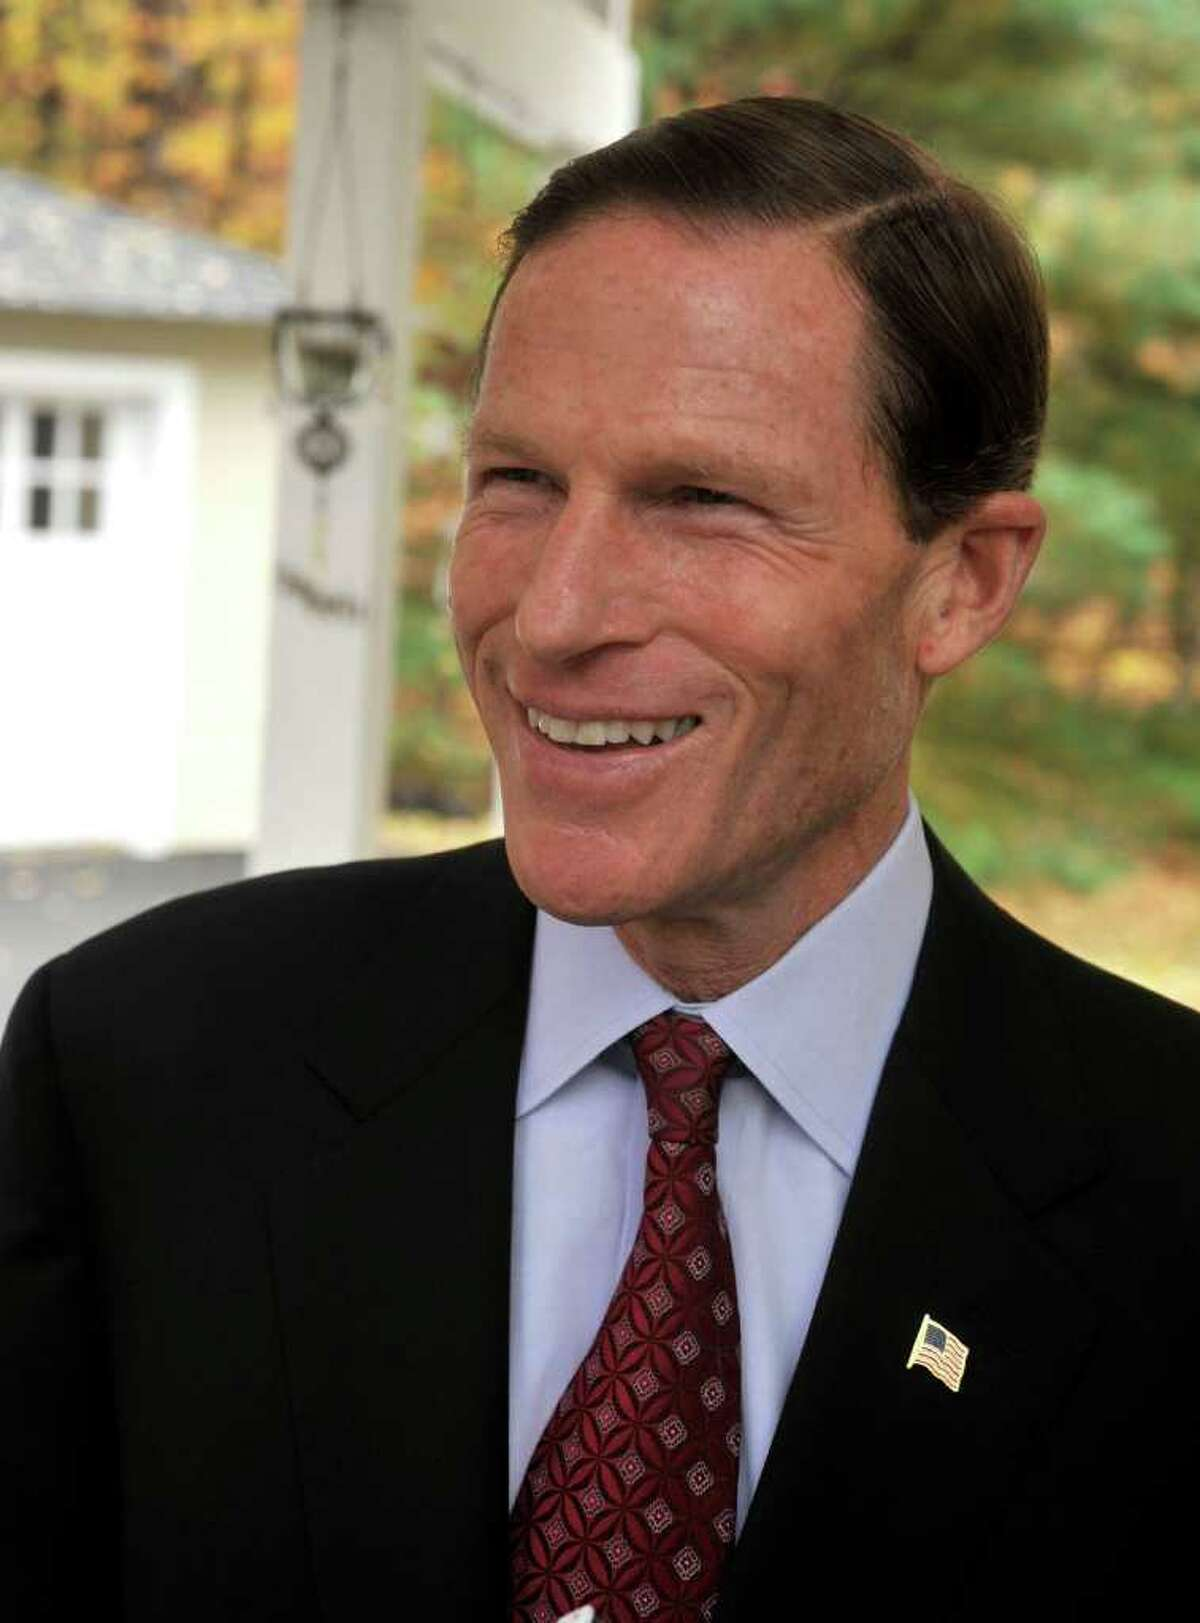 State Attorney General Richard Blumenthal, who is running for U.S. Senate, talks during a visit to the Danbury home of Julie Kushner and Larry Morgan, Wednesday, Oct. 27, 2010.